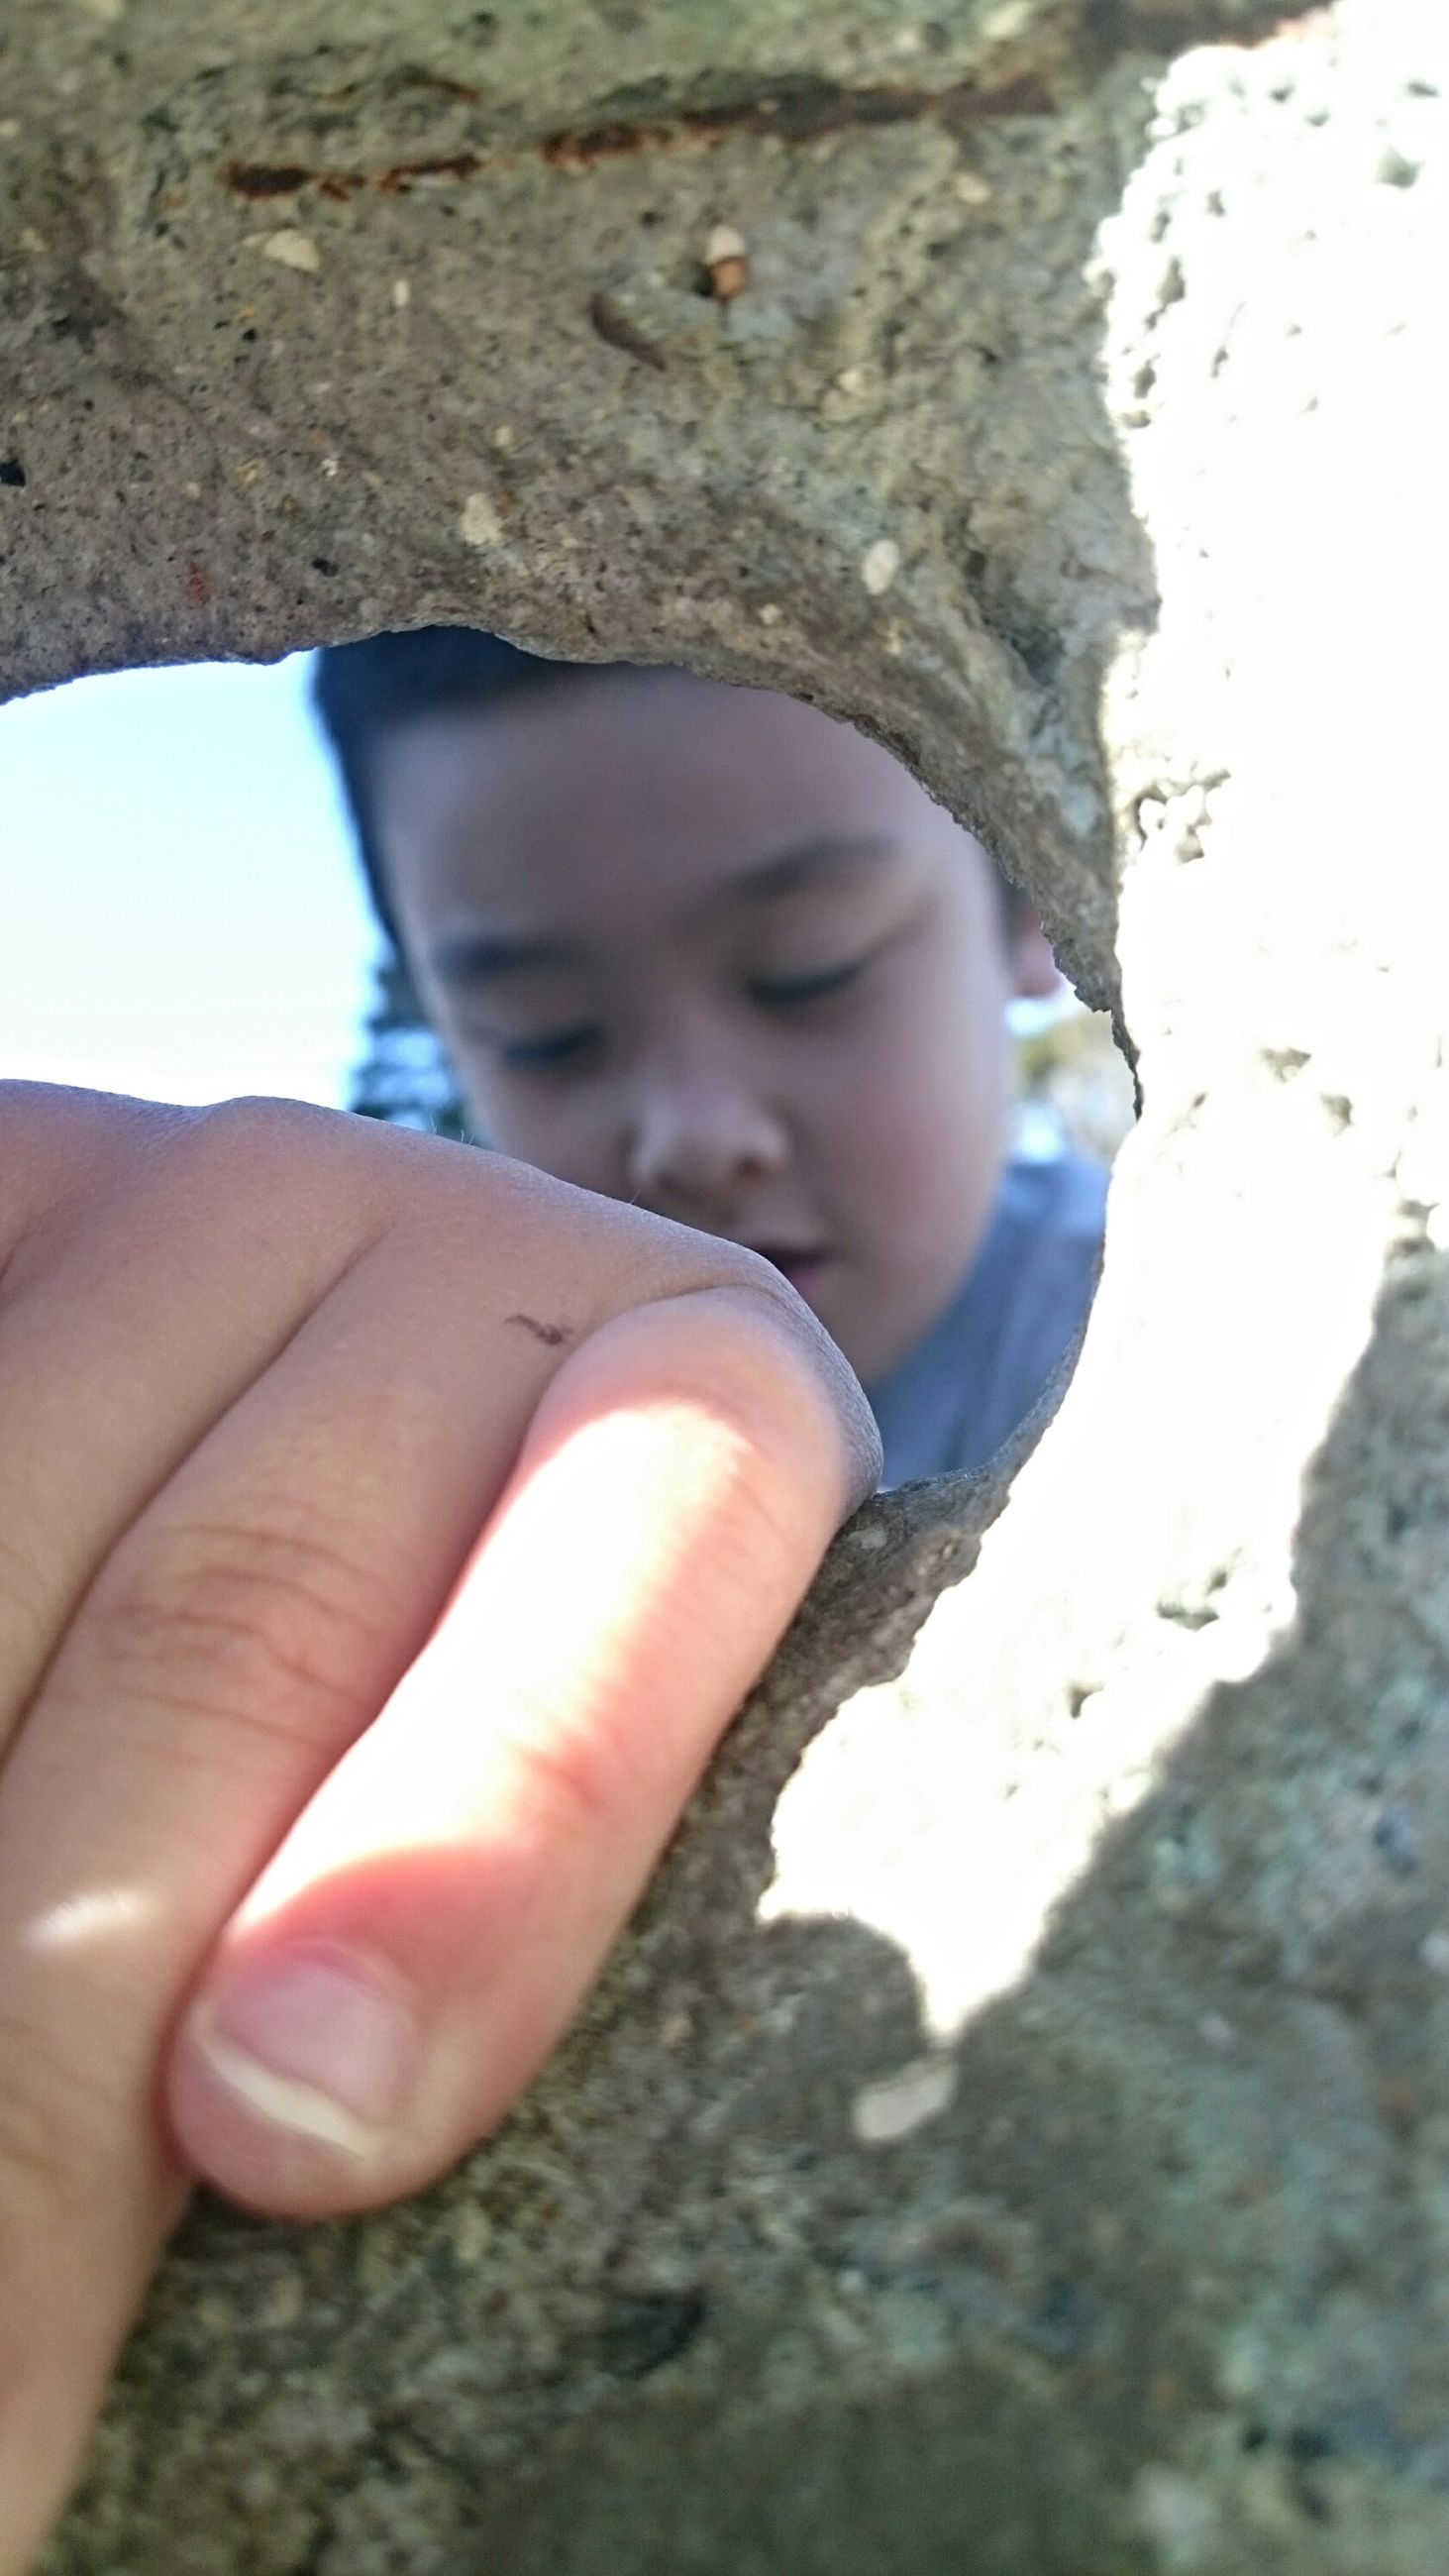 real people, human hand, one person, babyhood, childhood, day, baby, close-up, outdoors, leisure activity, human body part